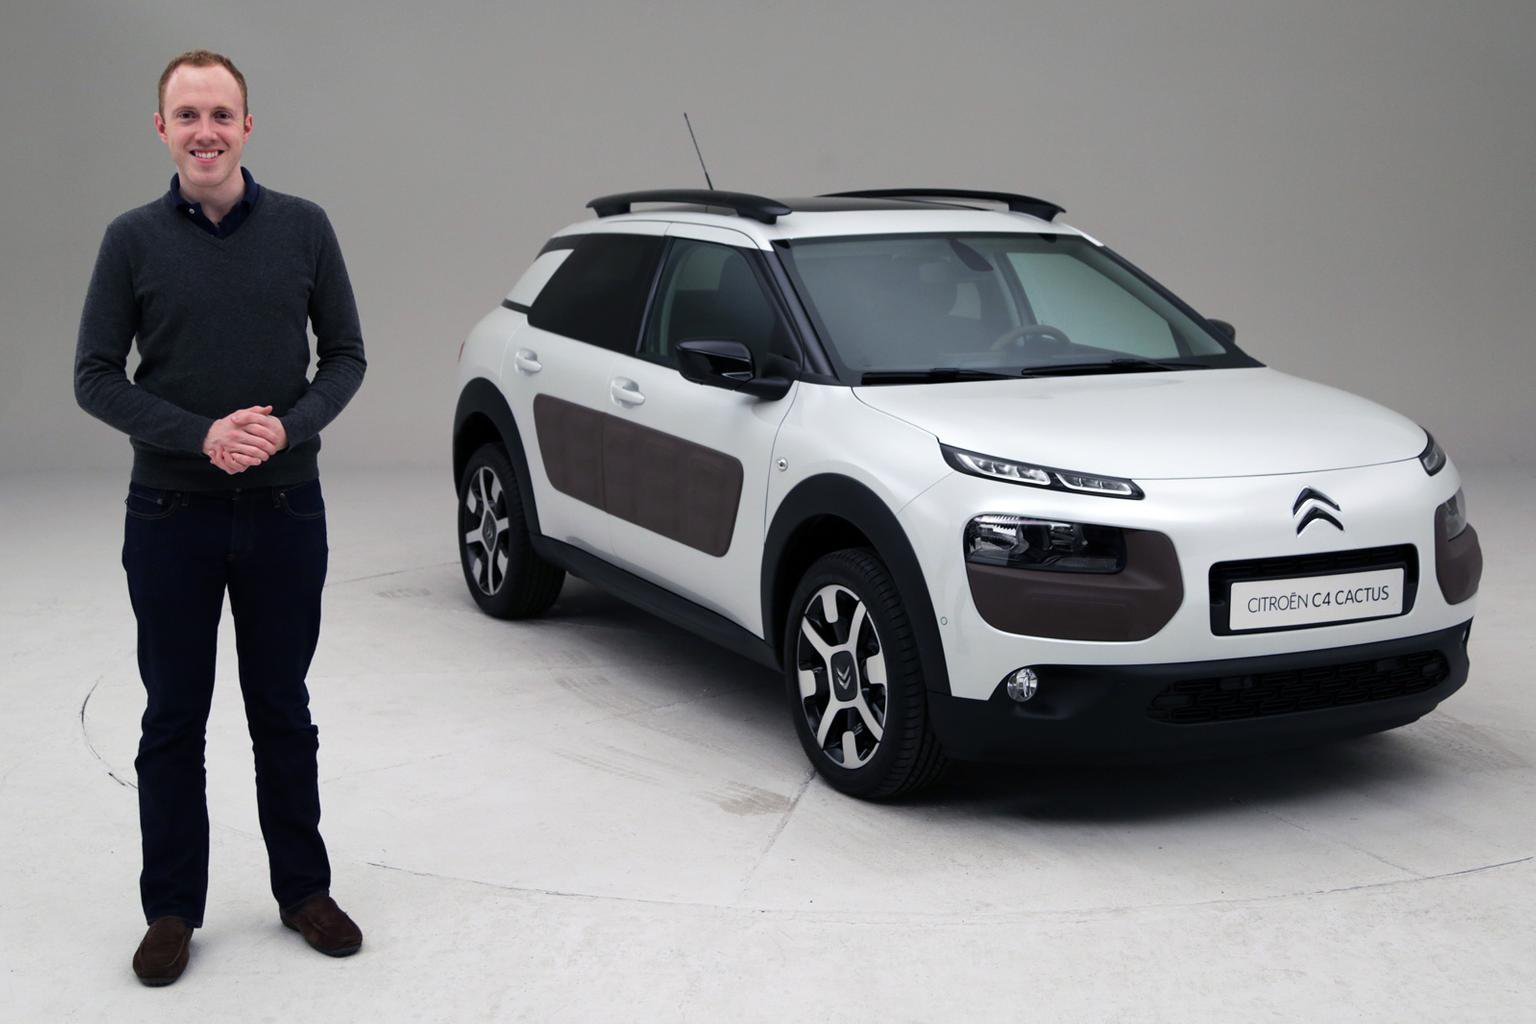 Readers review the Citroen C4 Cactus